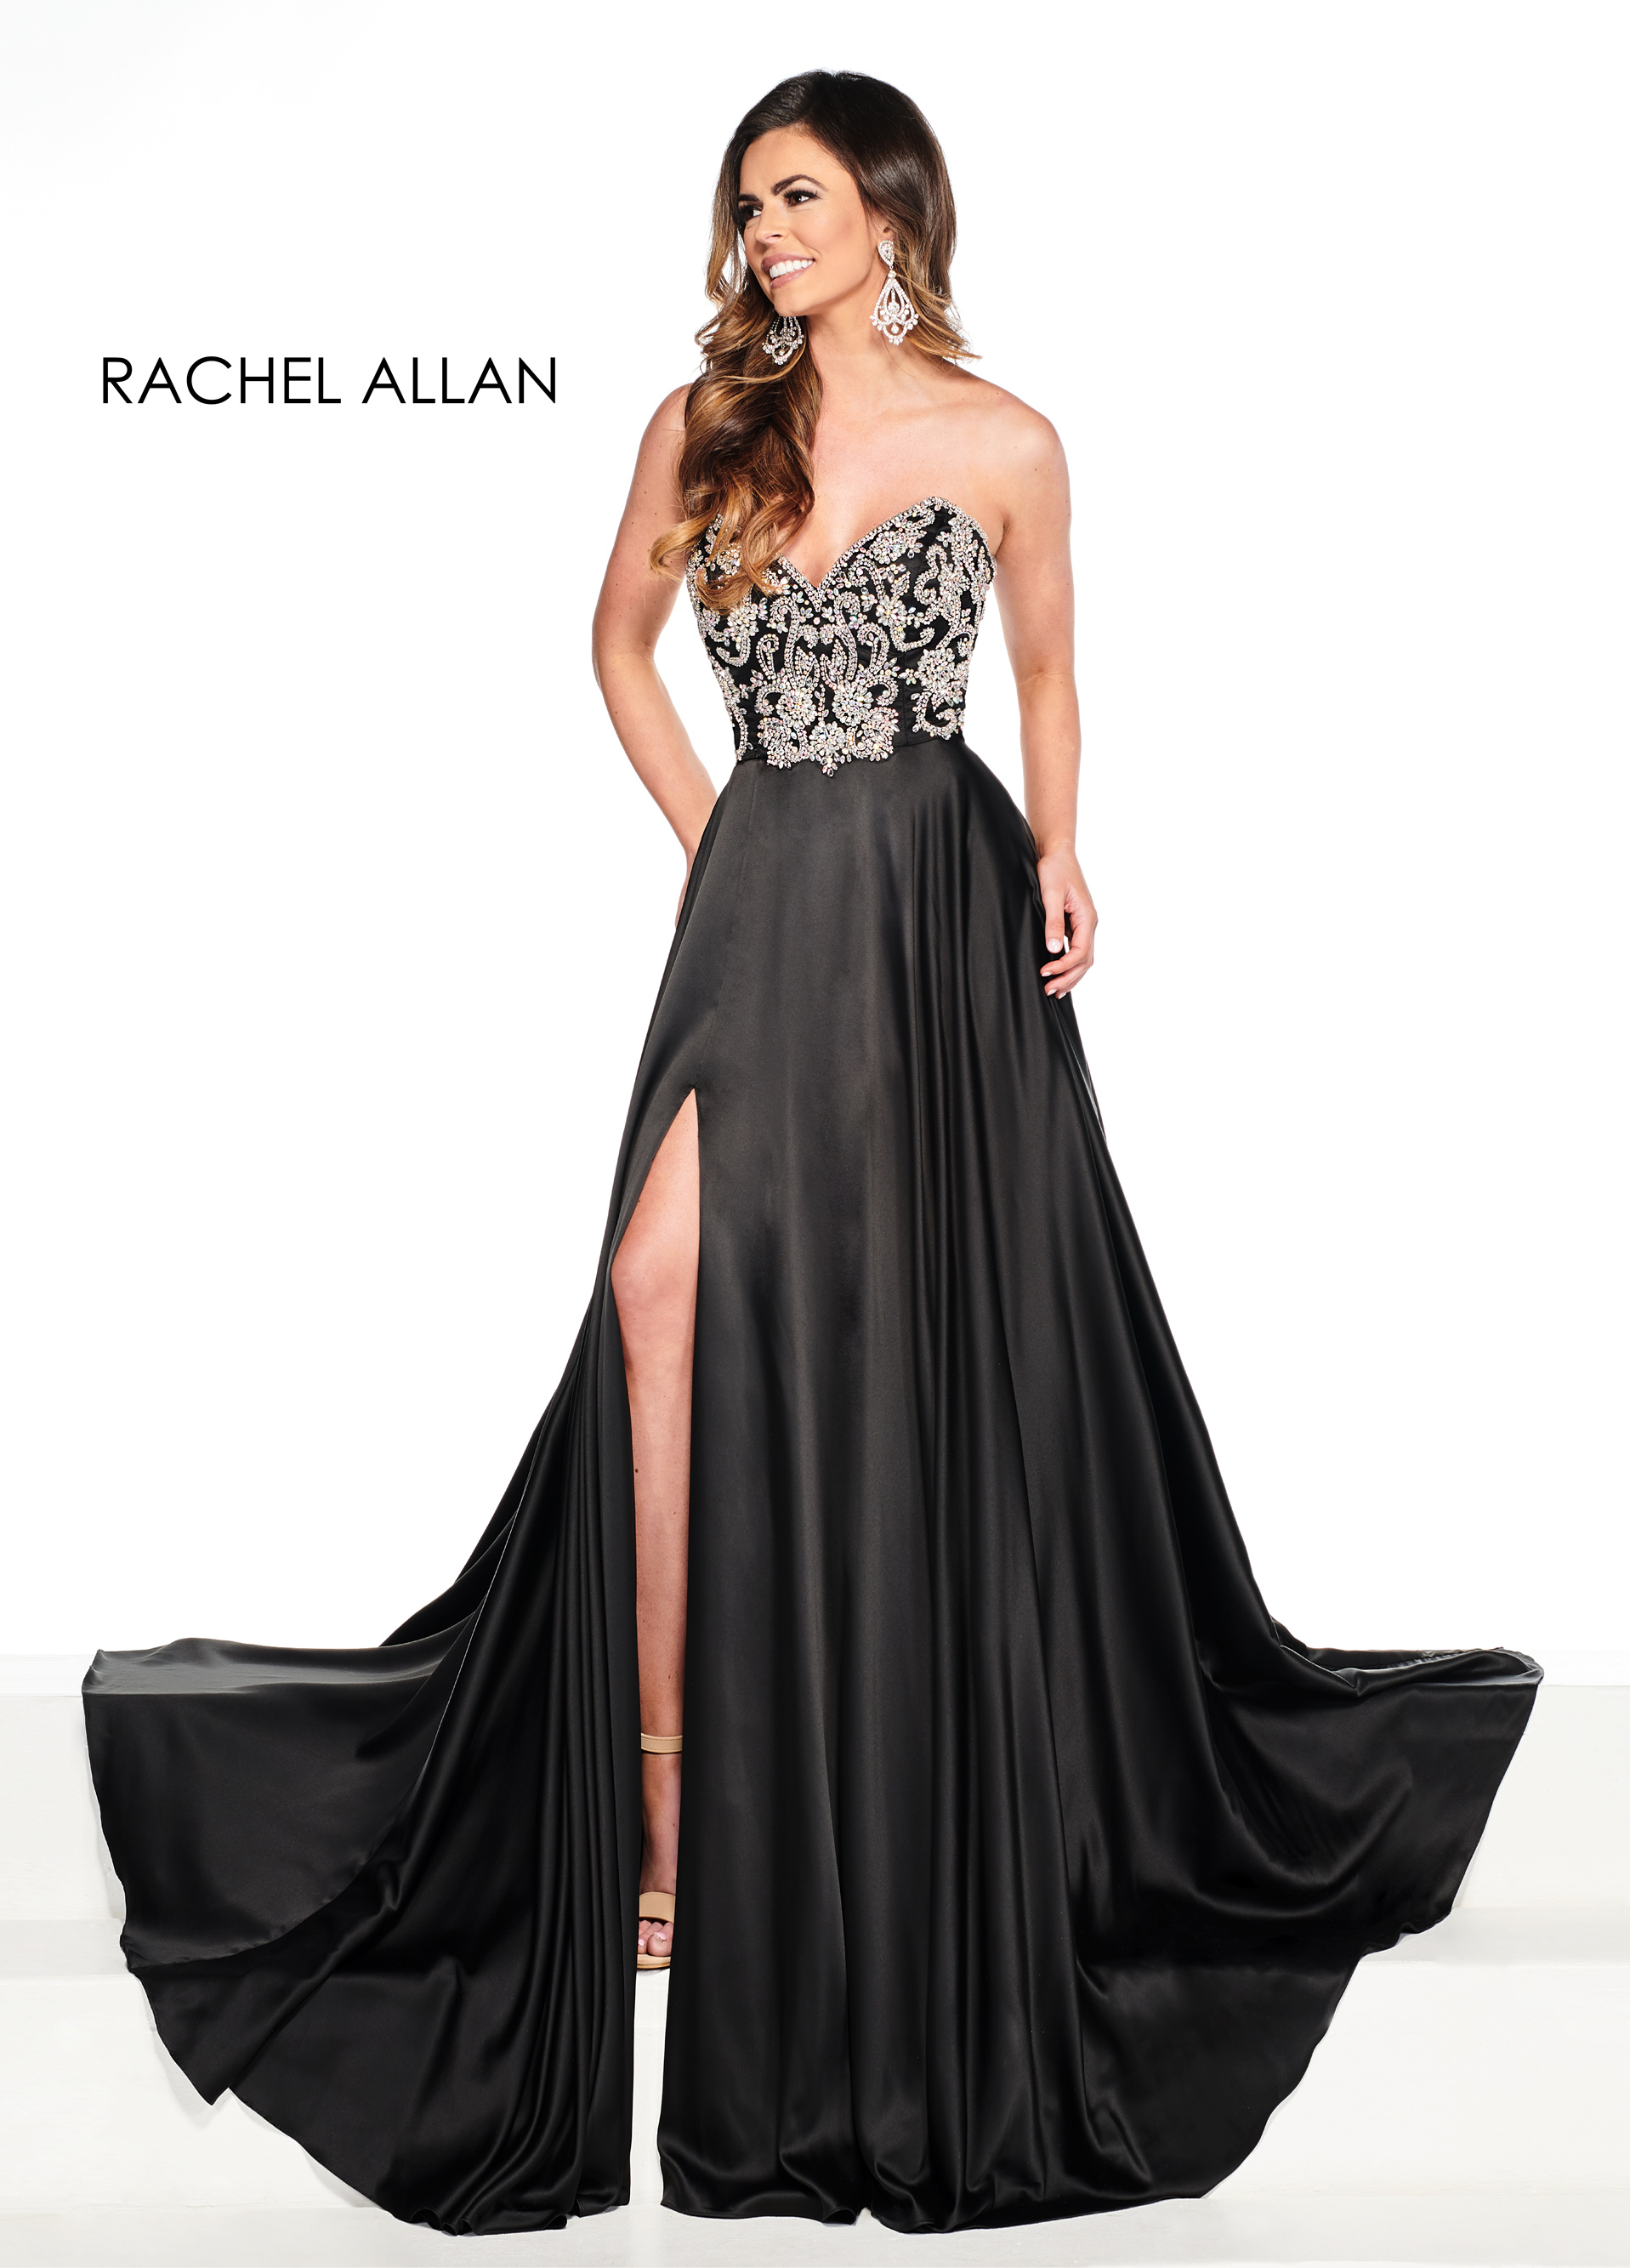 Sweetheart A-Line Pageant Dresses in Black Color